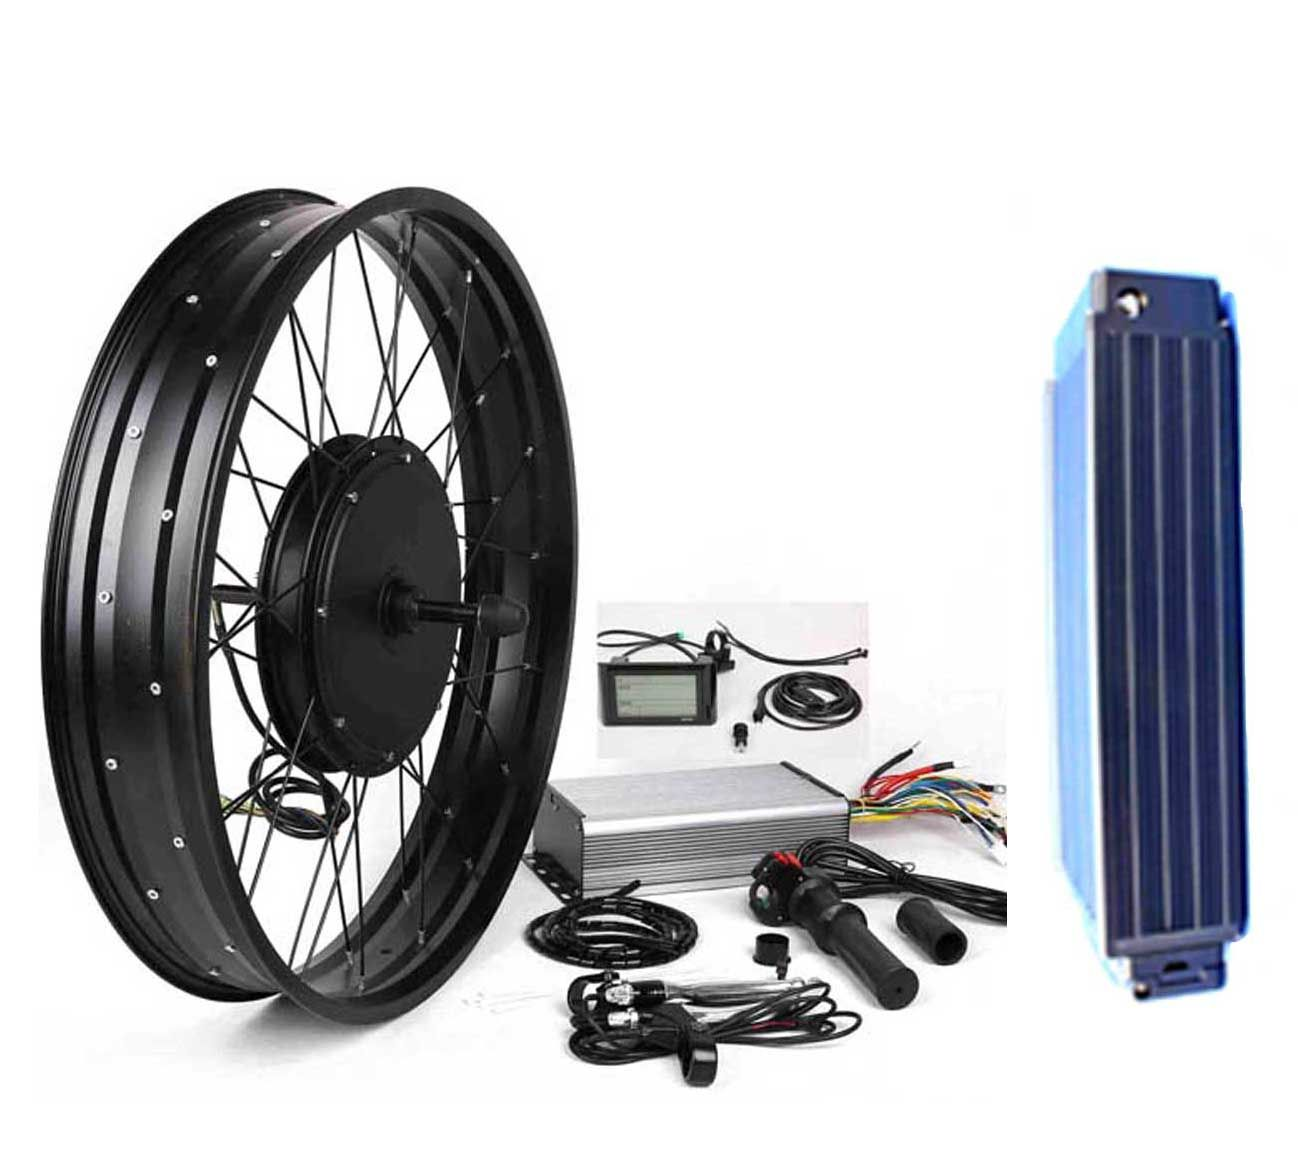 3000w Electric Bike Kit With 48v 31a Battery Huge Torque 155n M Good At Climbing Hill Driving Rang Electric Bike Kits Electric Bike Electric Bike Conversion